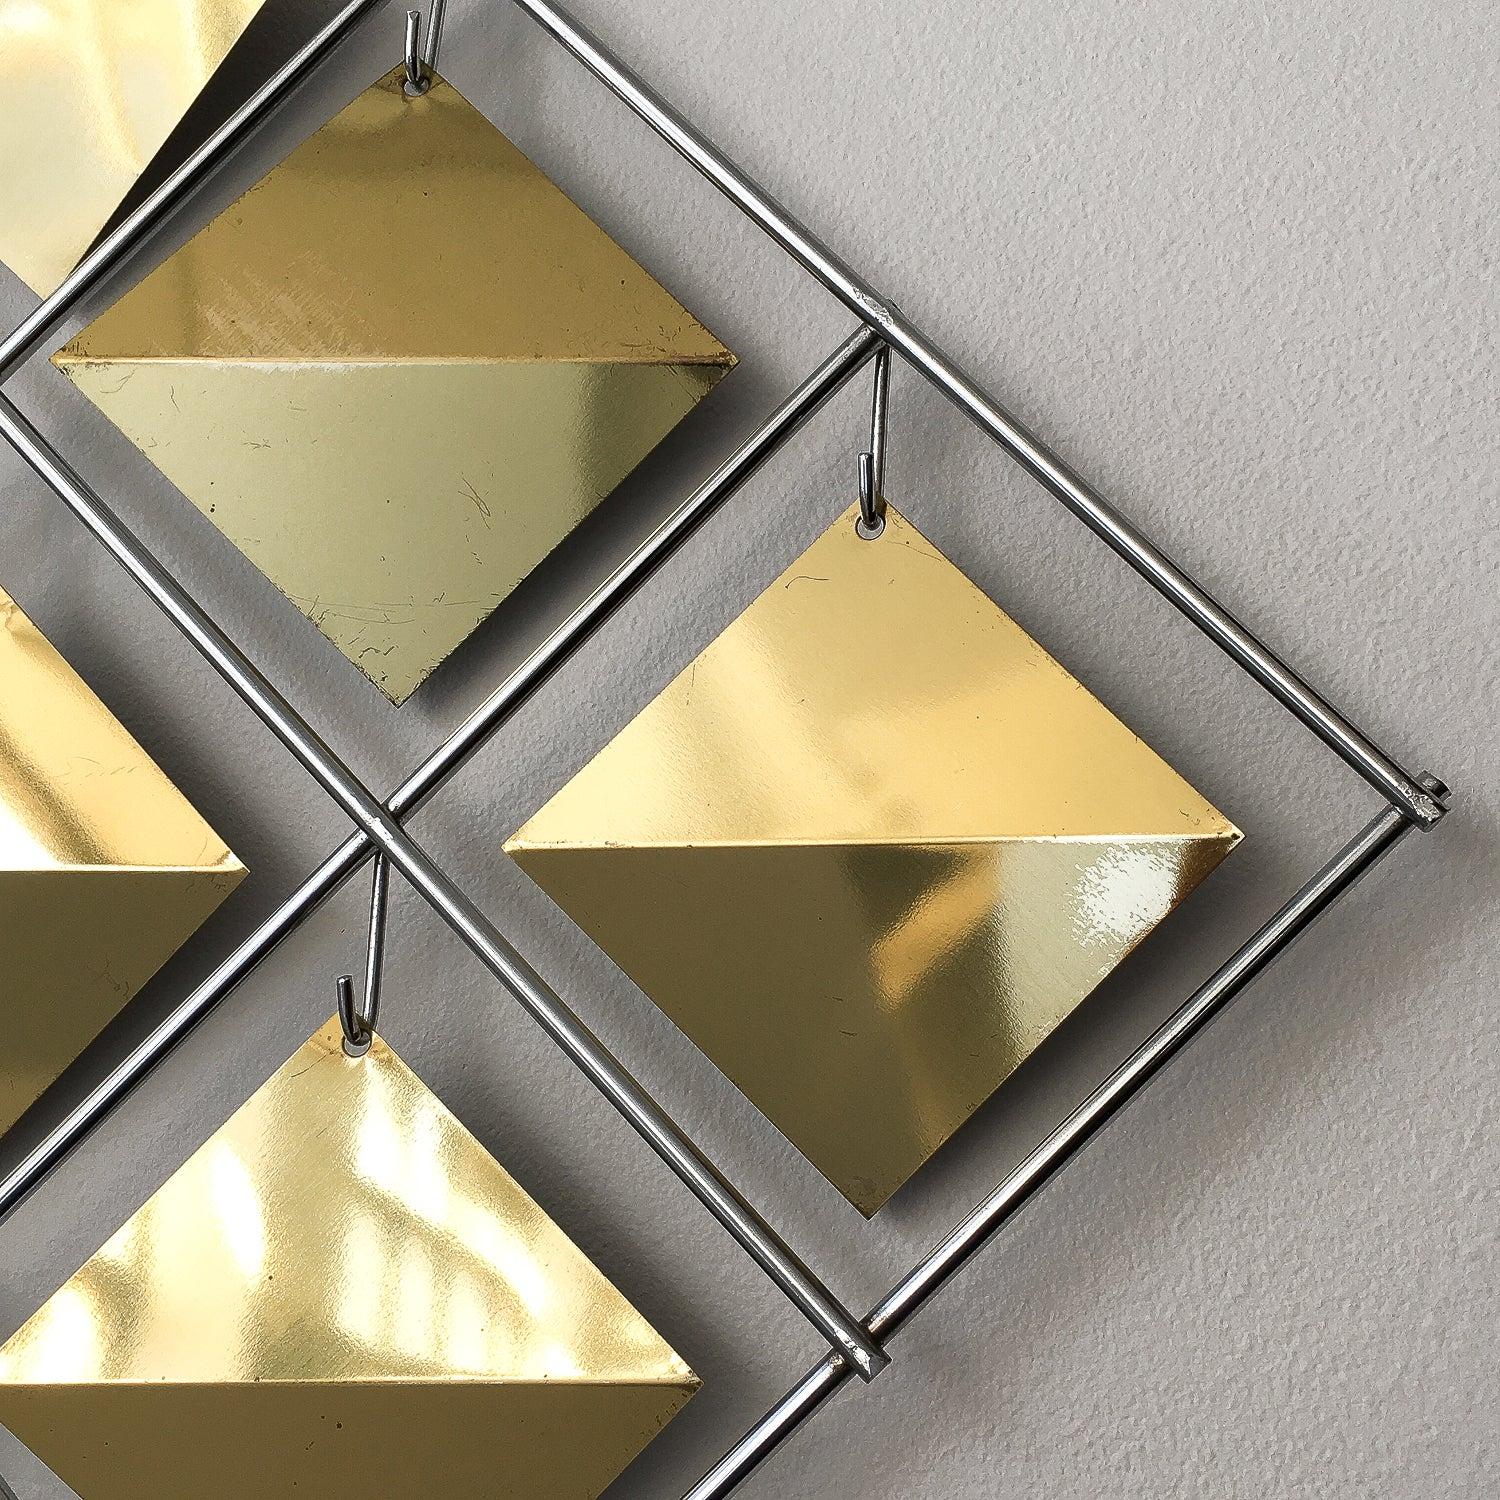 Curtis Jere Brass Diamond Kinetic Wall Sculpture For Sale at 1stdibs